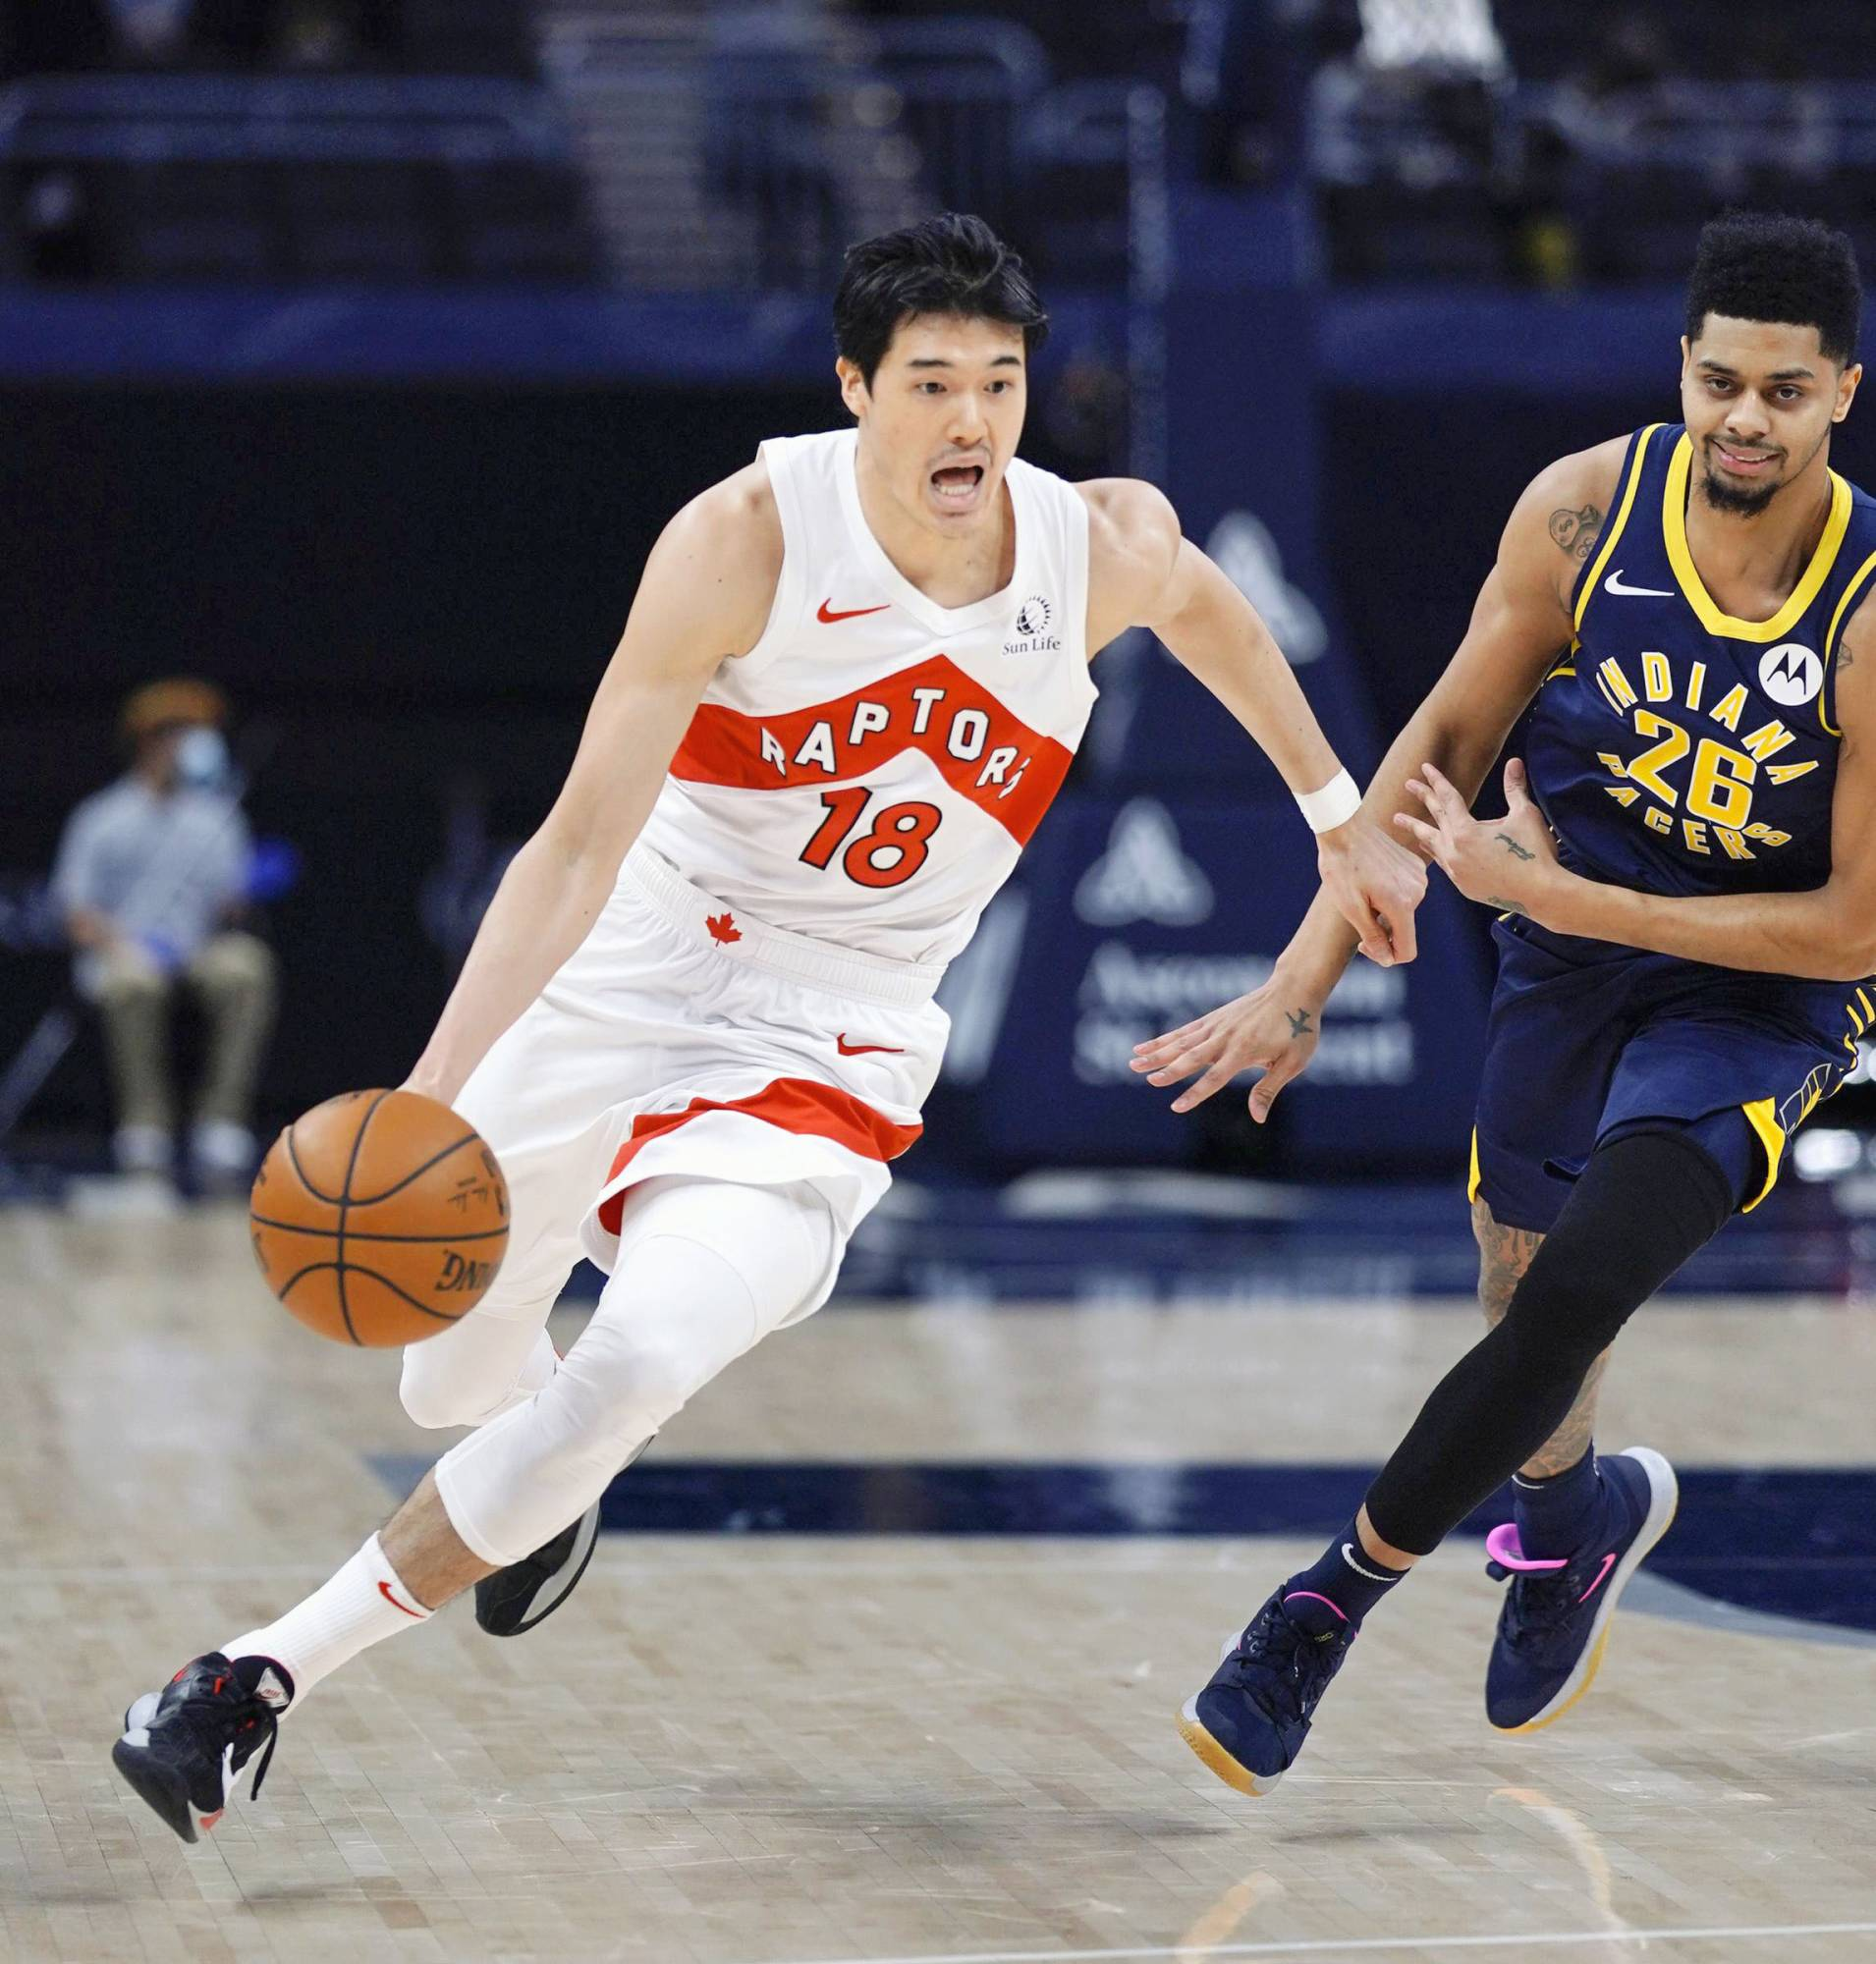 Yuta Watanabe of the Toronto Raptors drives past a defender during a game against the Indiana Pacers on Jan. 26. | NBAE / GETTY IMAGES / VIA KYODO